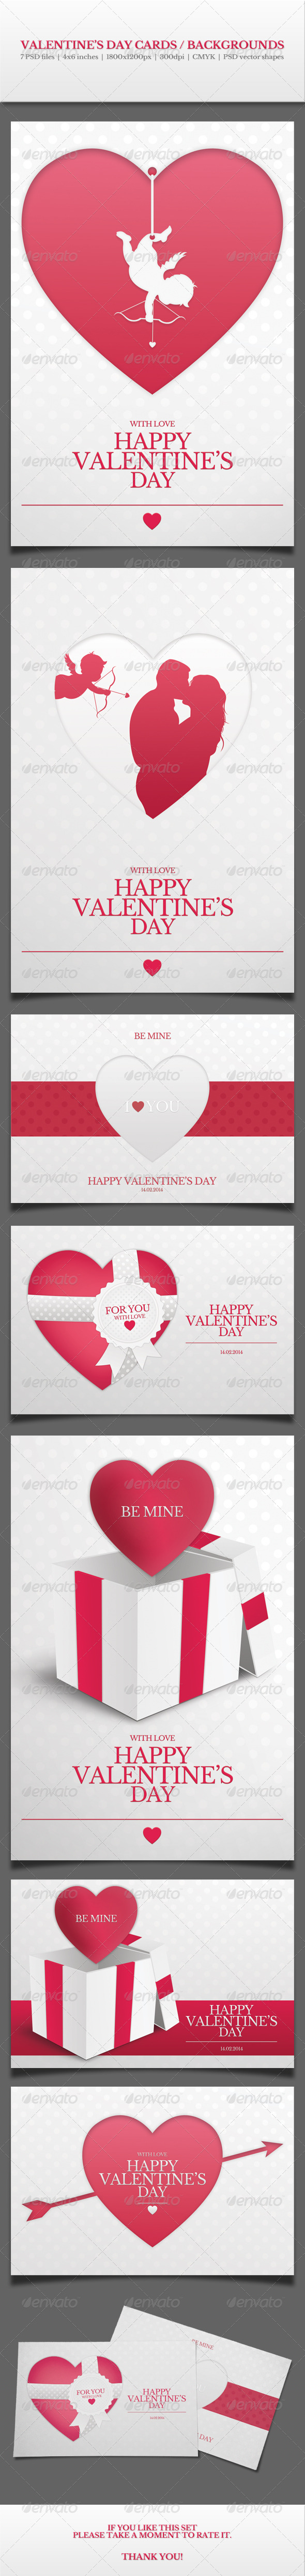 GraphicRiver Valentine s Day Cards Backgrounds Vol.1 6483532